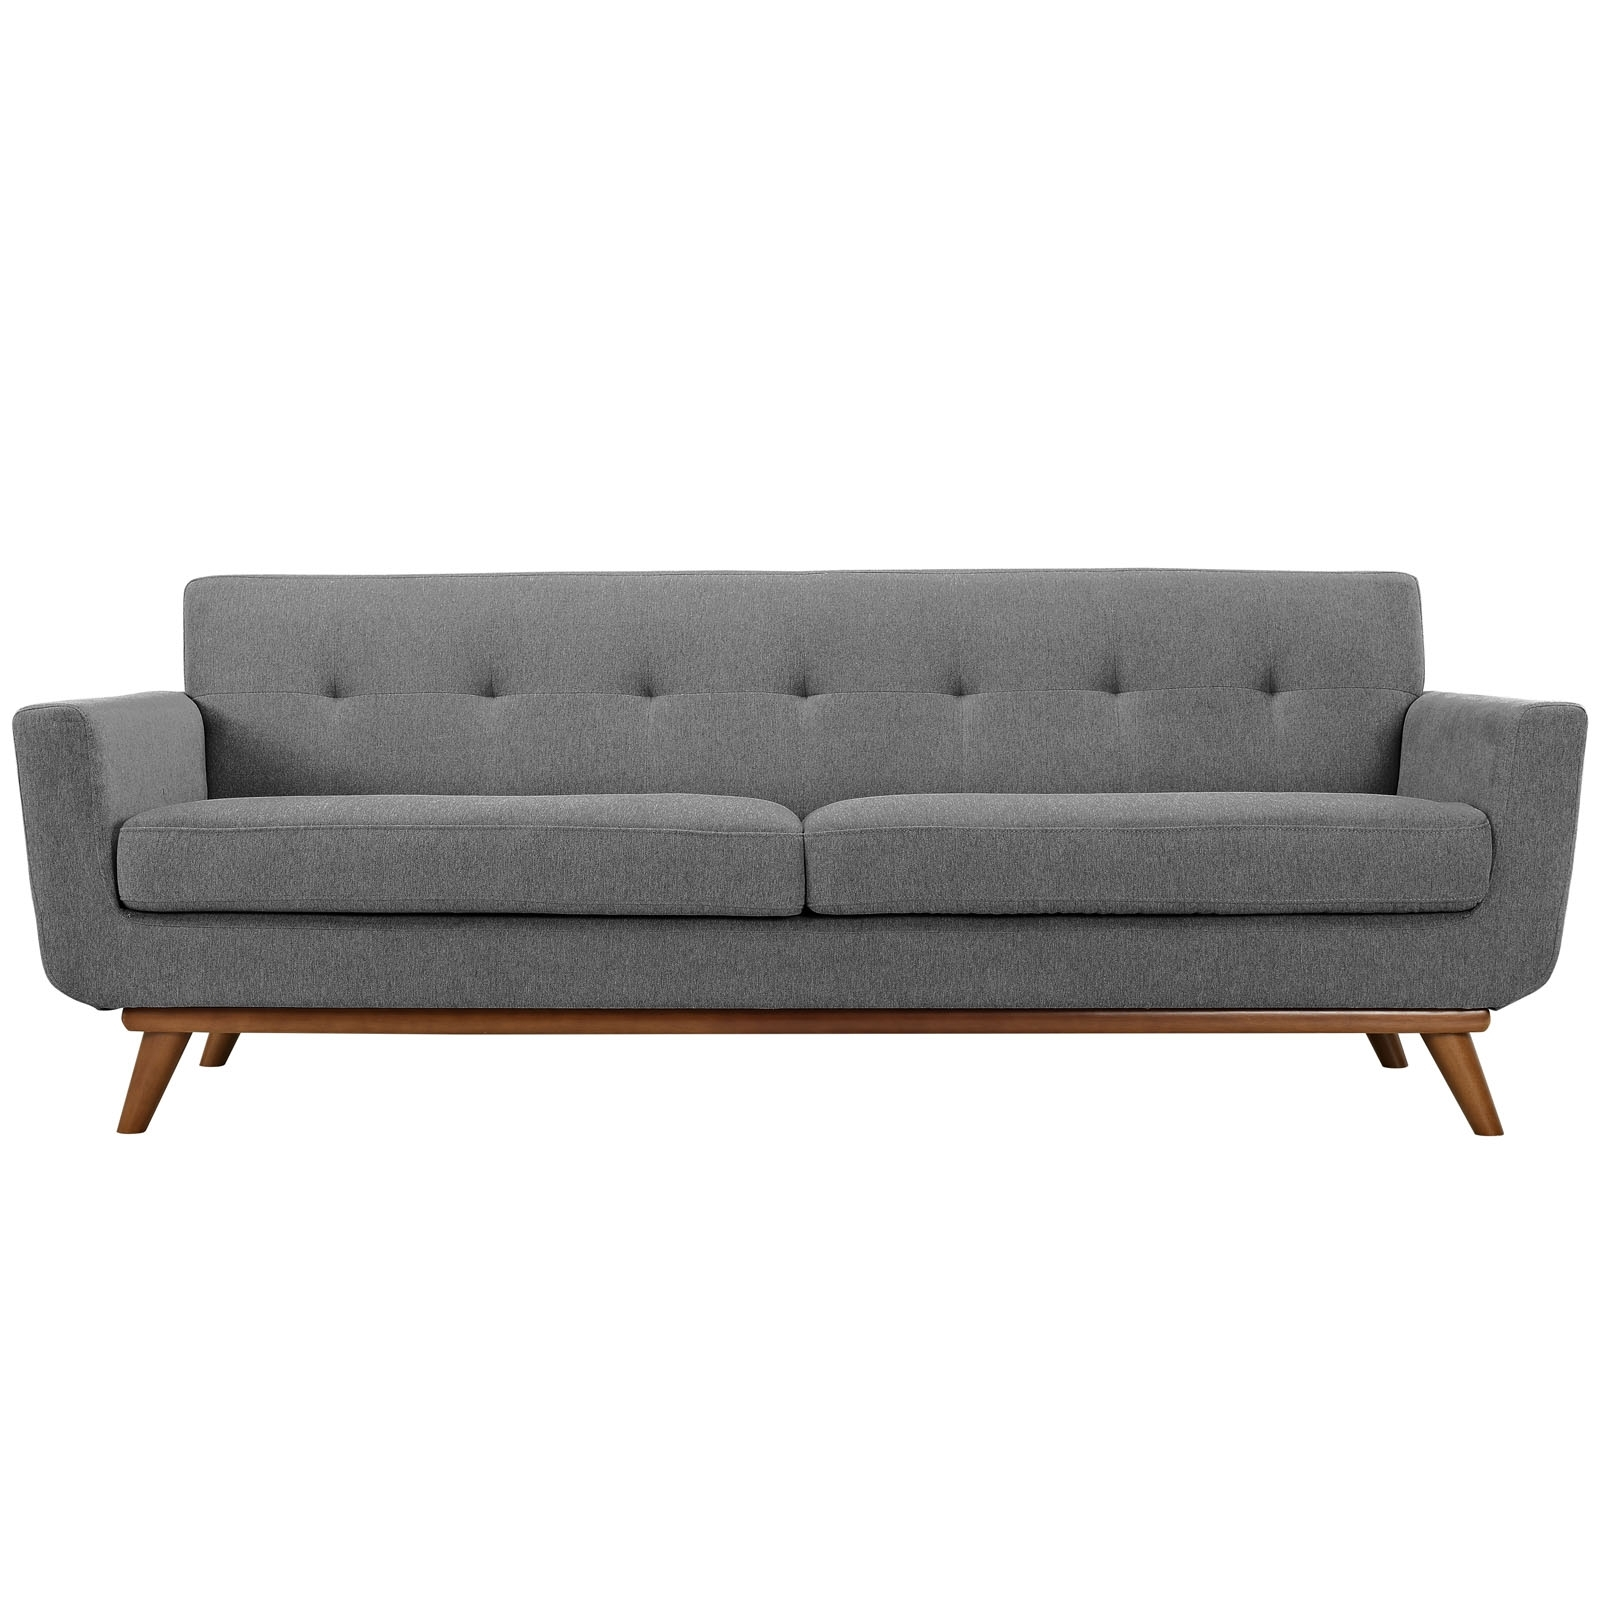 Well Known Sectional Sofas Under 700 Inside Sofas & Couches – Walmart (View 14 of 20)